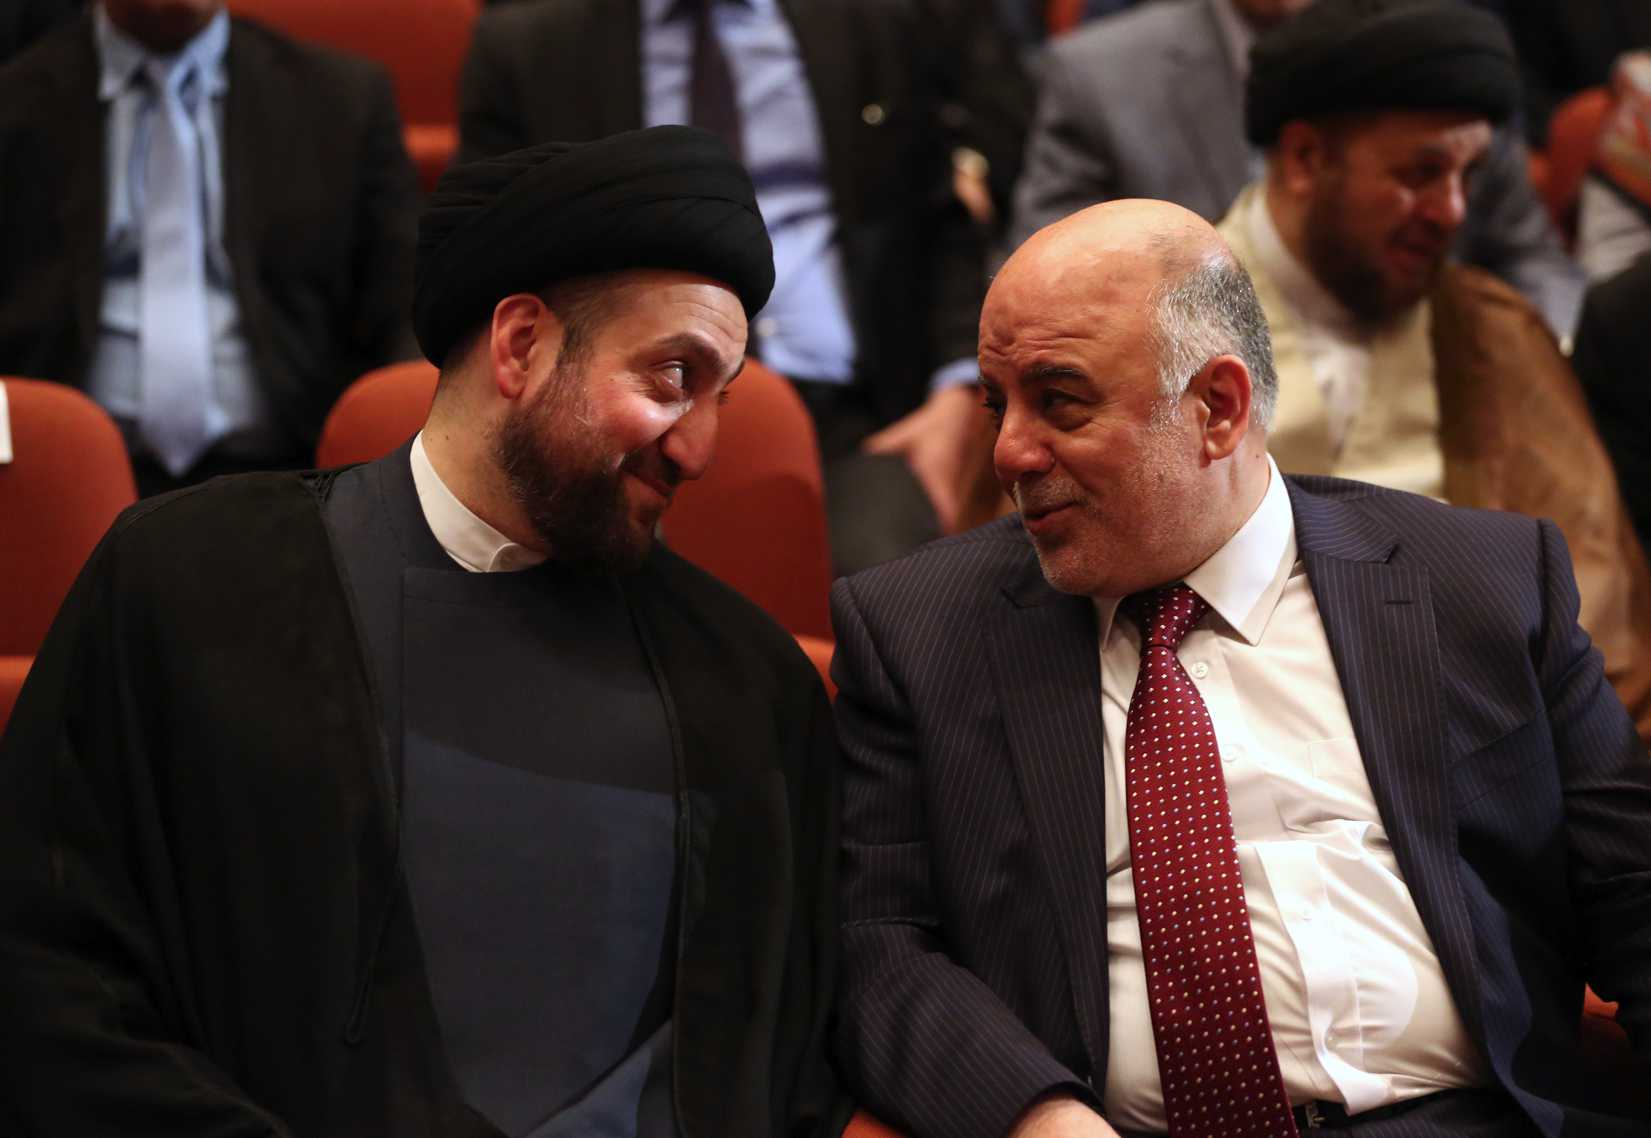 Iraq's new Prime Minister Haider al-Abadi, right, and Ammar al-Hakim, left, the leader of the Supreme Islamic Council of Iraq, during the session to approve the new government in Baghdad on Sept. 8, 2014